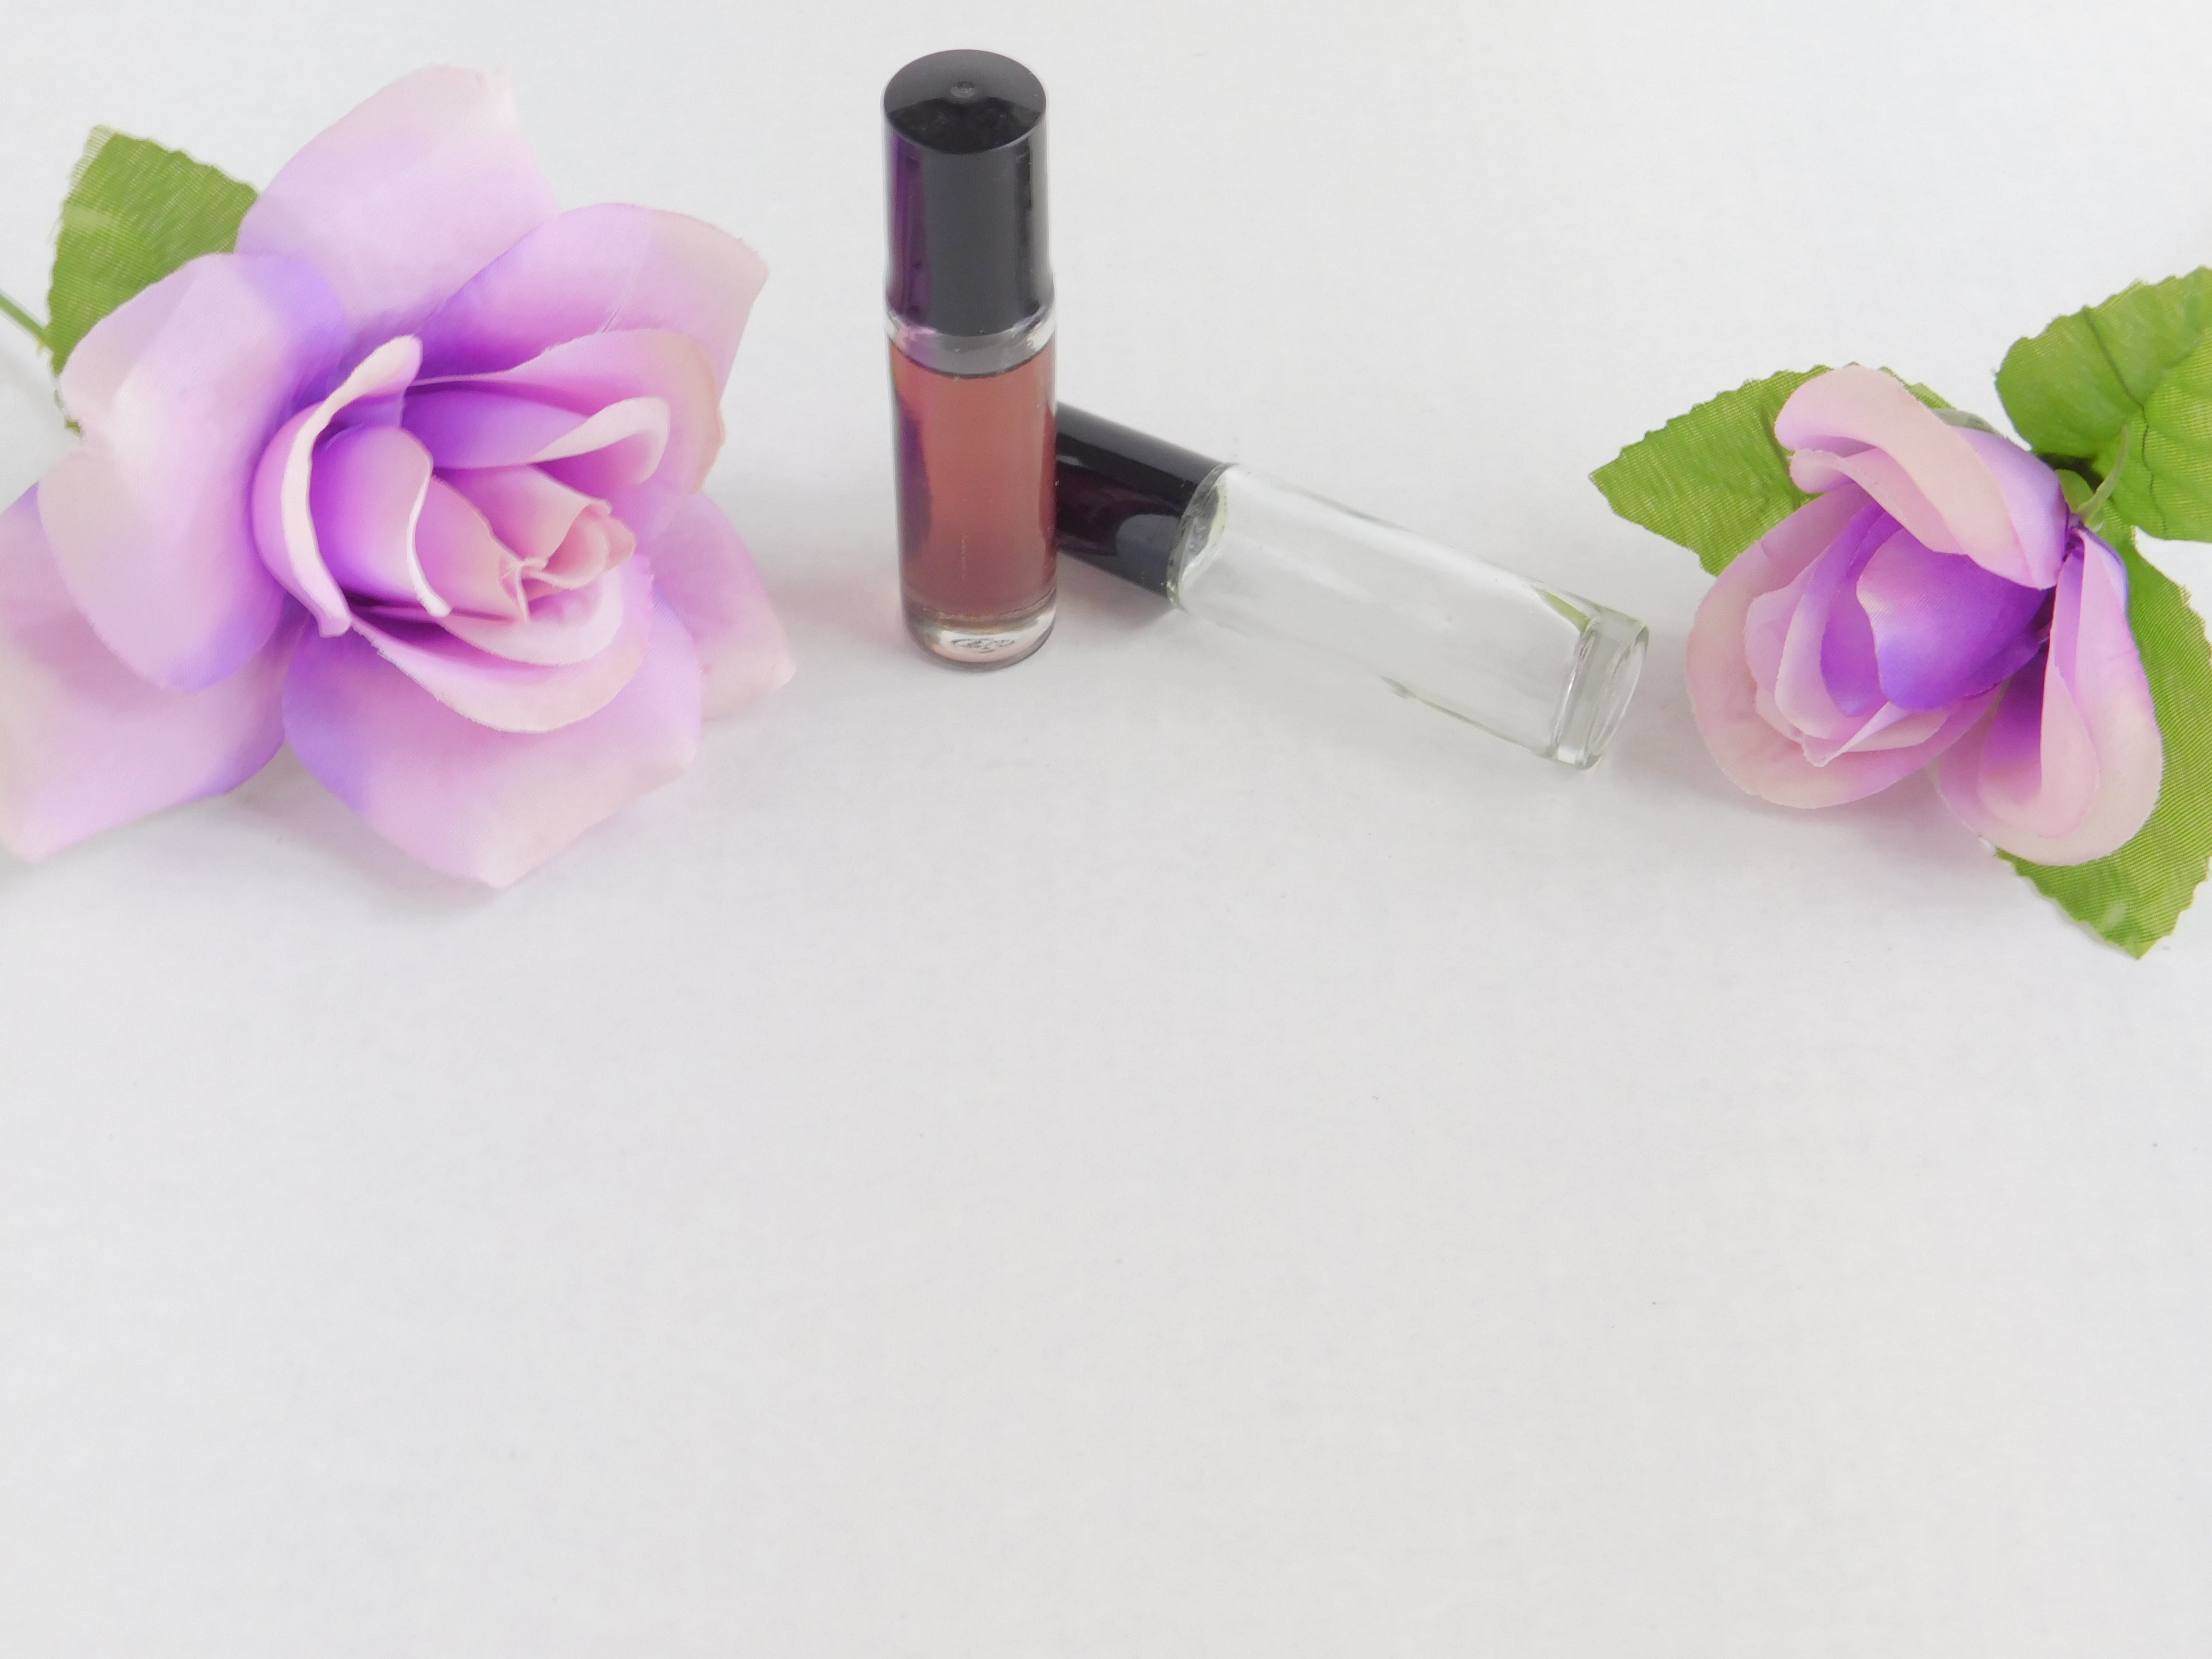 Free stock photo of purple, roses, fragrance, essential oils